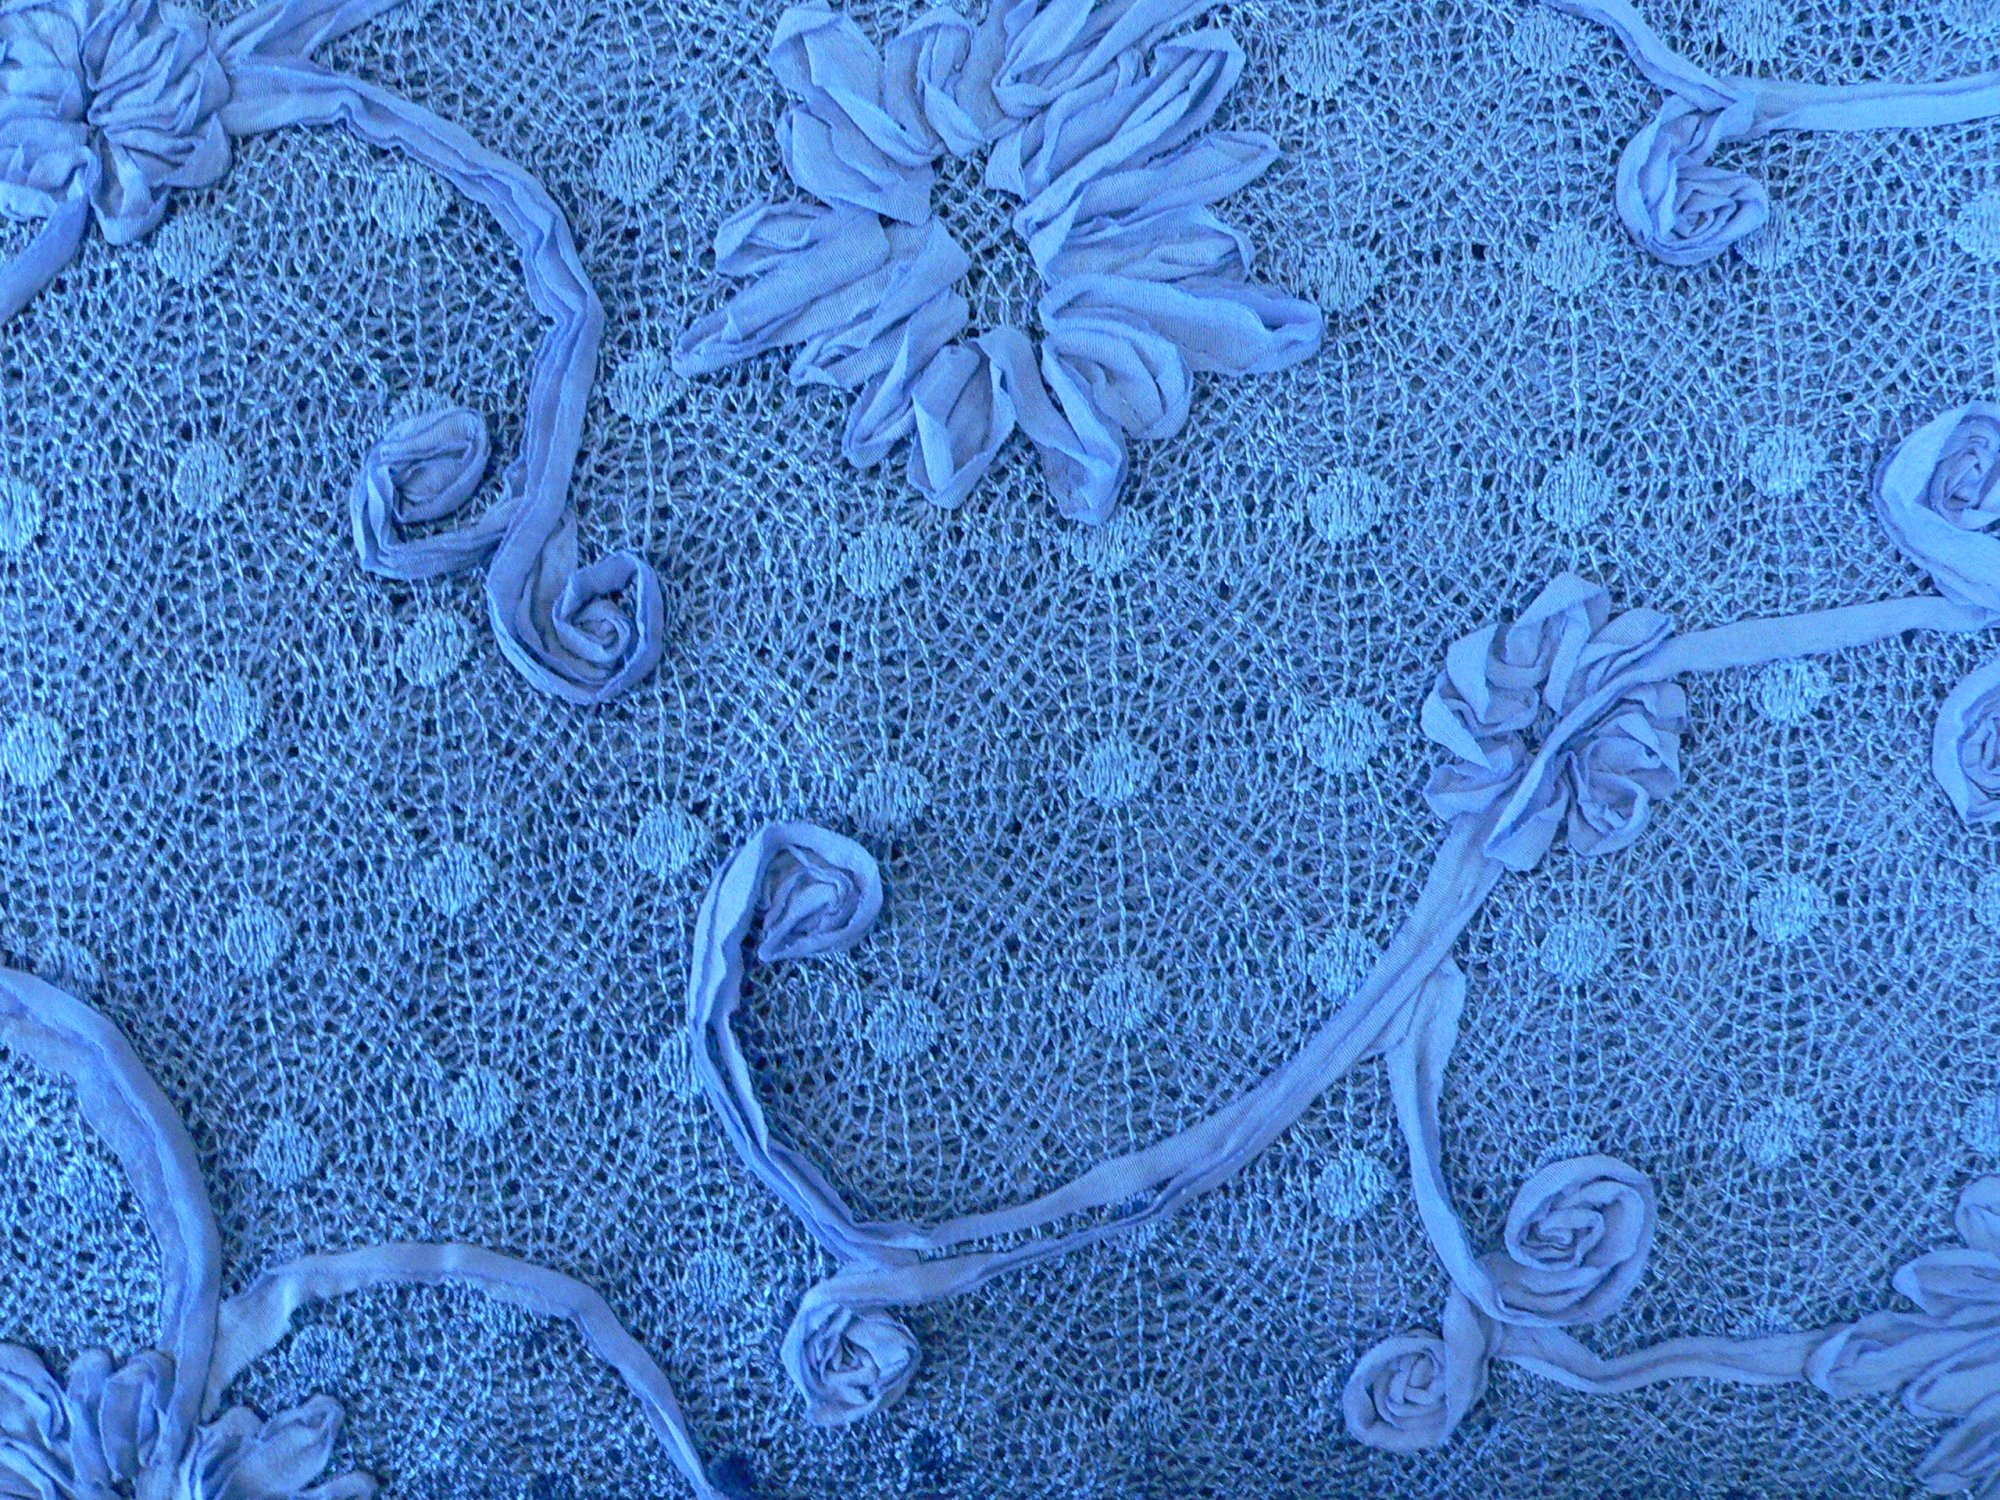 Lace, dimentional applique, periwinkle blue